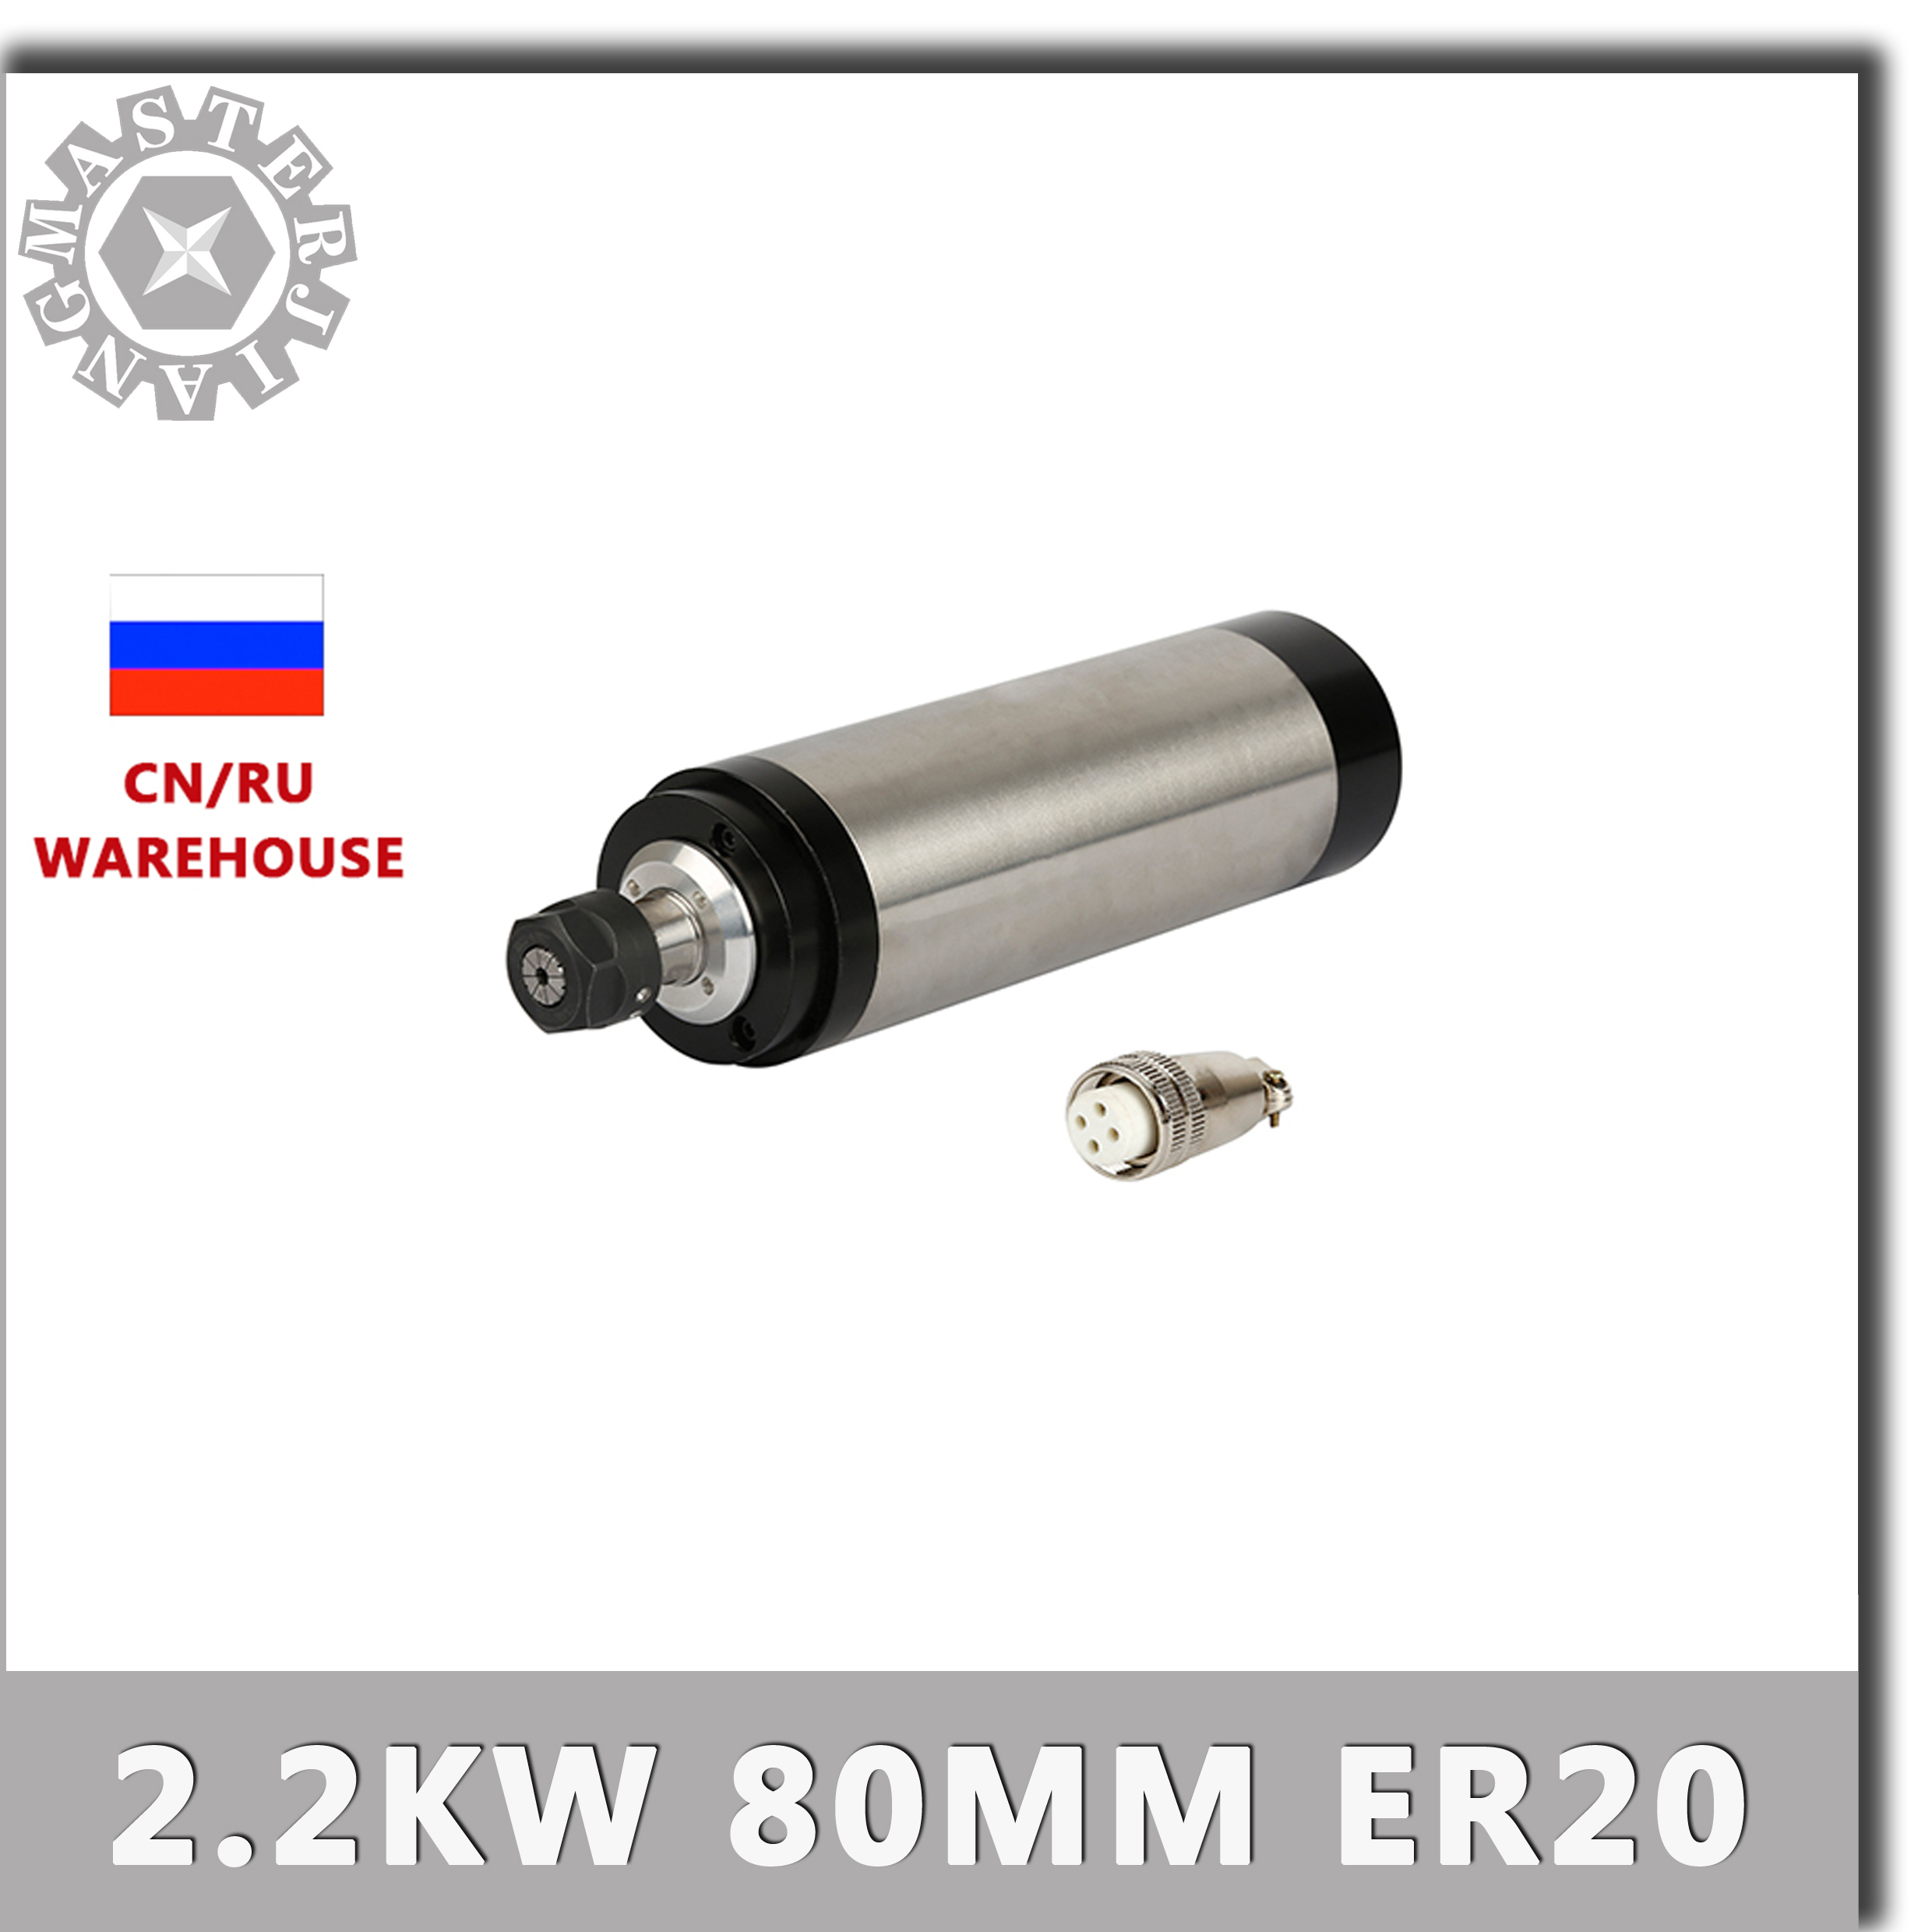 CNC 2200W Water cooling Spindle Motor 220V 2.2KW 80mm ER20 water-cooled spindle Engraving Milling Machine.